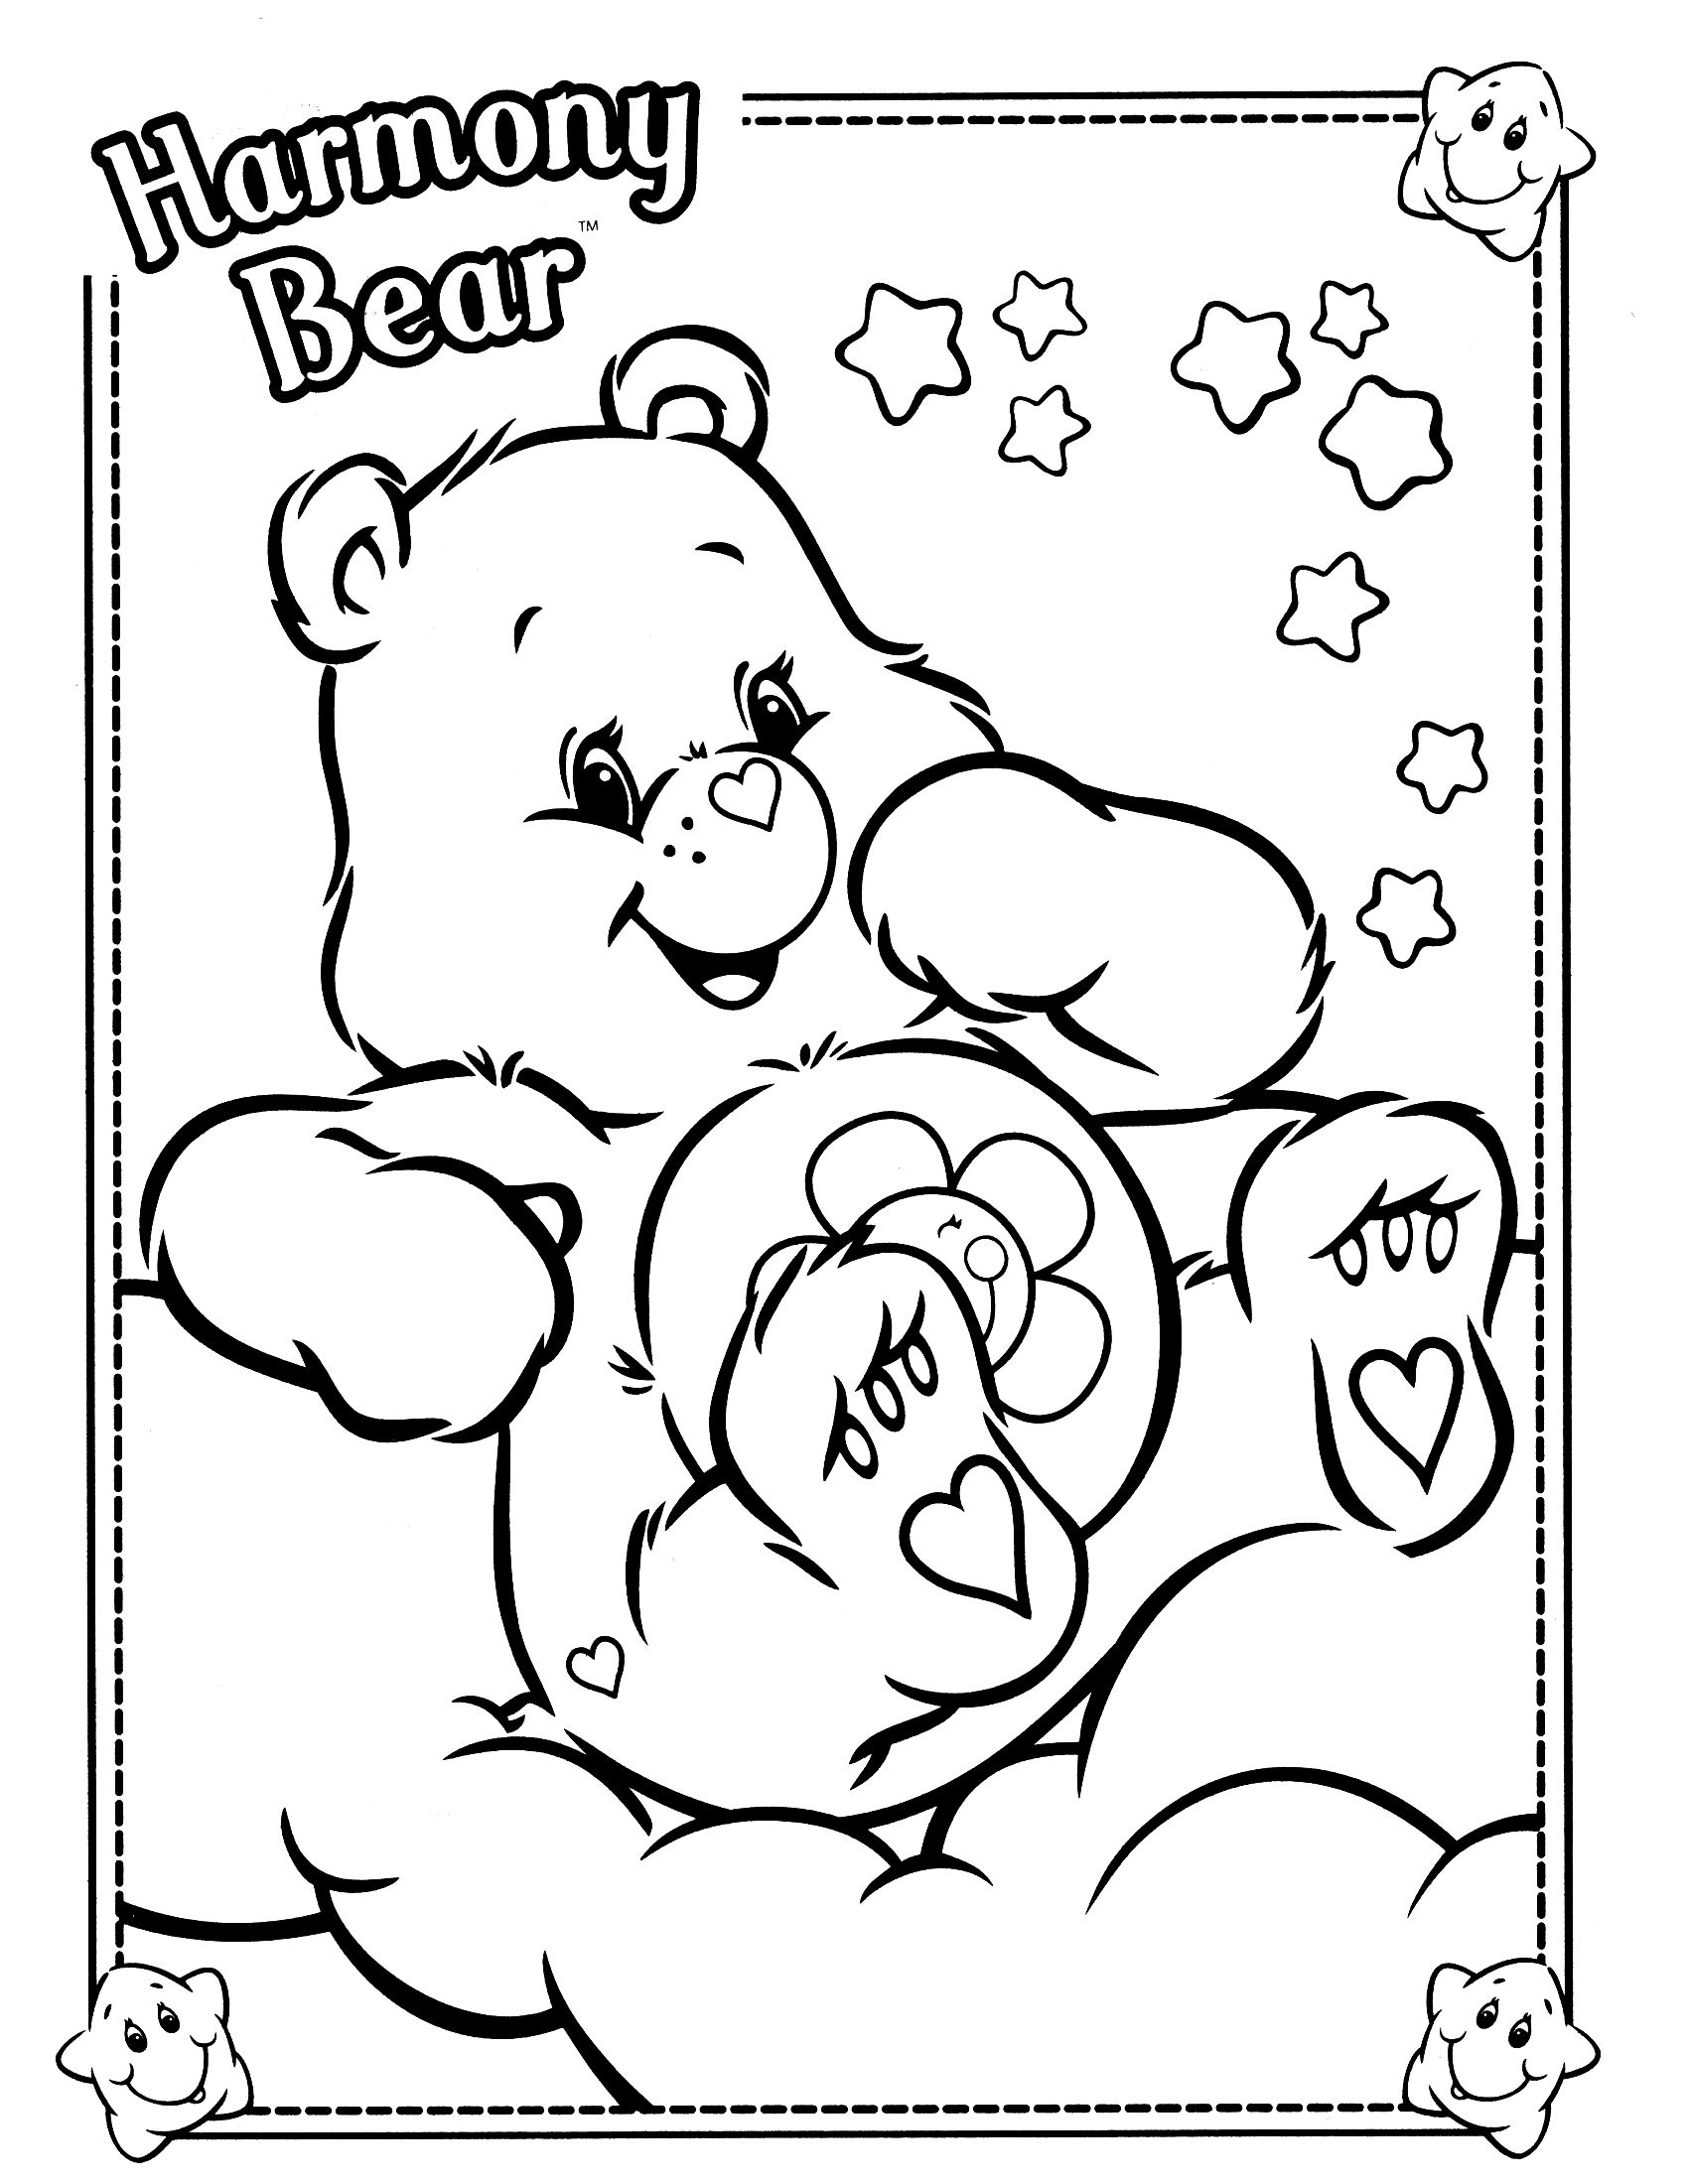 Care Bears Coloring Page Bear Coloring Pages Cute Coloring